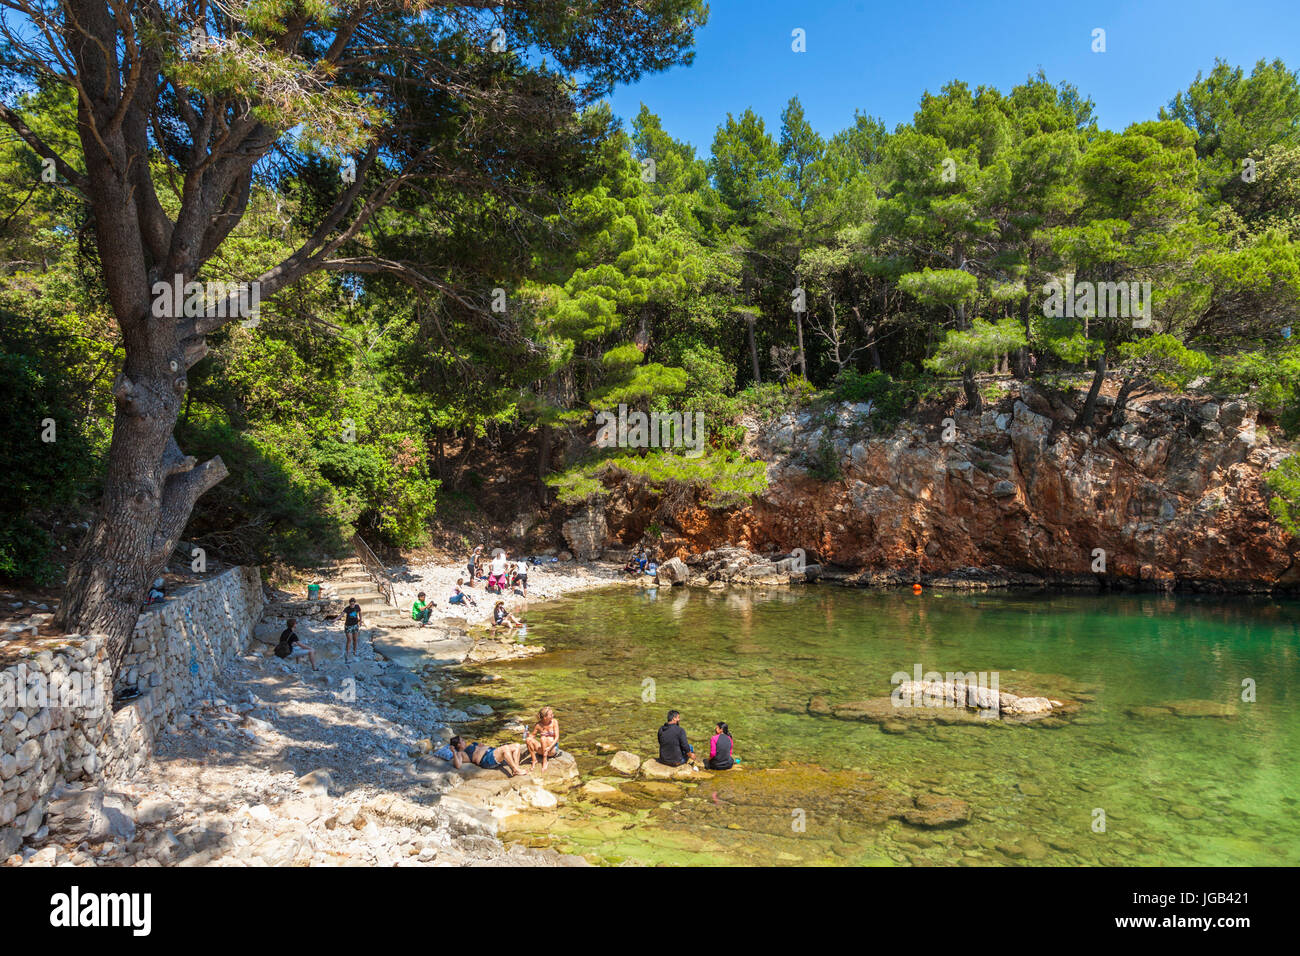 Croatia Dubrovnik Croatia Dalmatian coast Lokrum island Dubrovnik  Dead Sea, Mrtvo more, small salt lake bathing - Stock Image